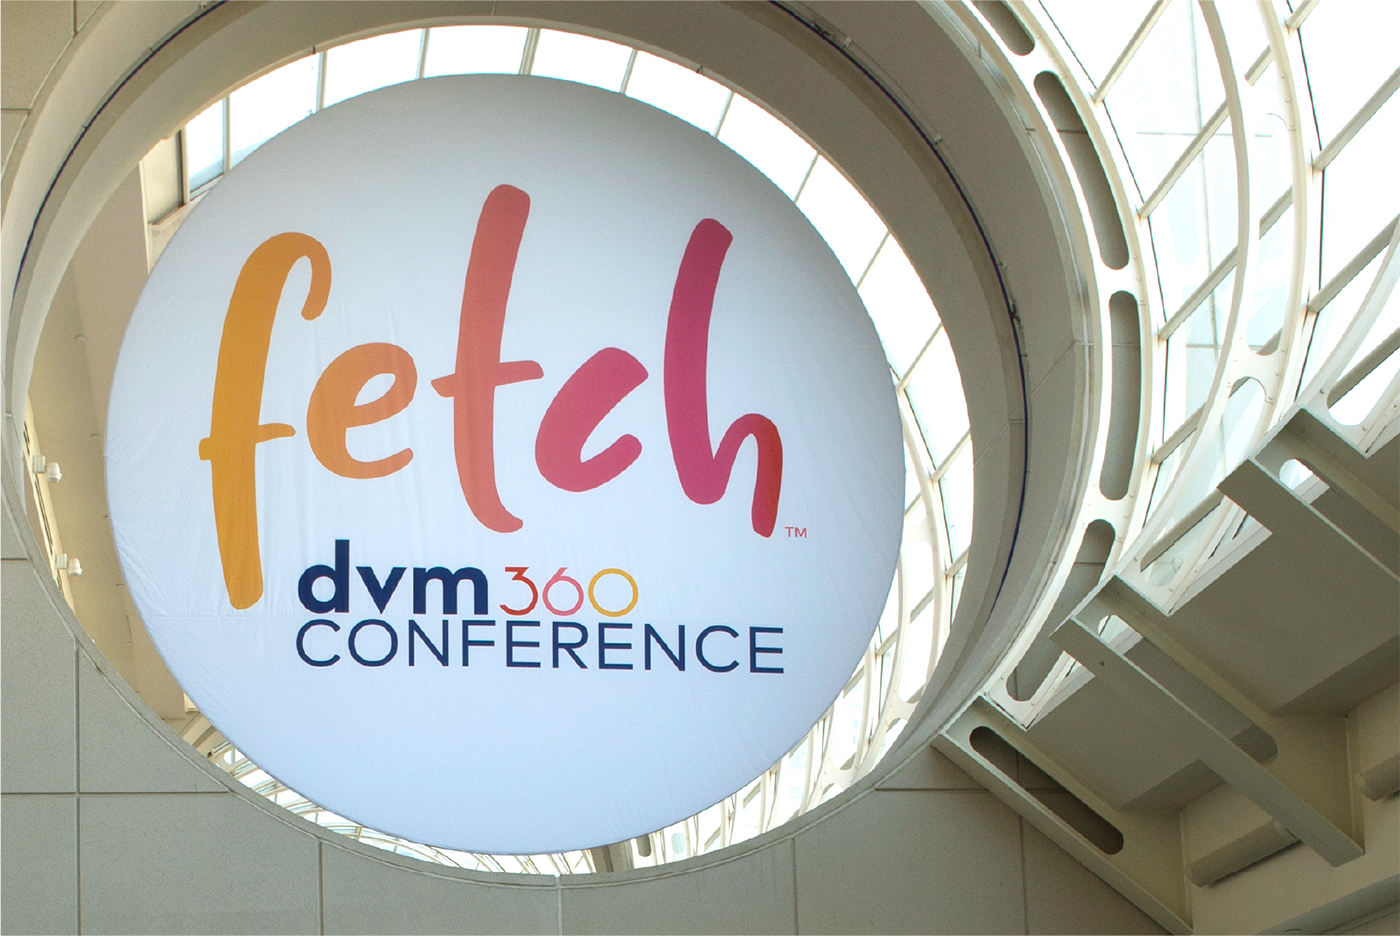 fetch dvm360 - Environmental Design Kansas City